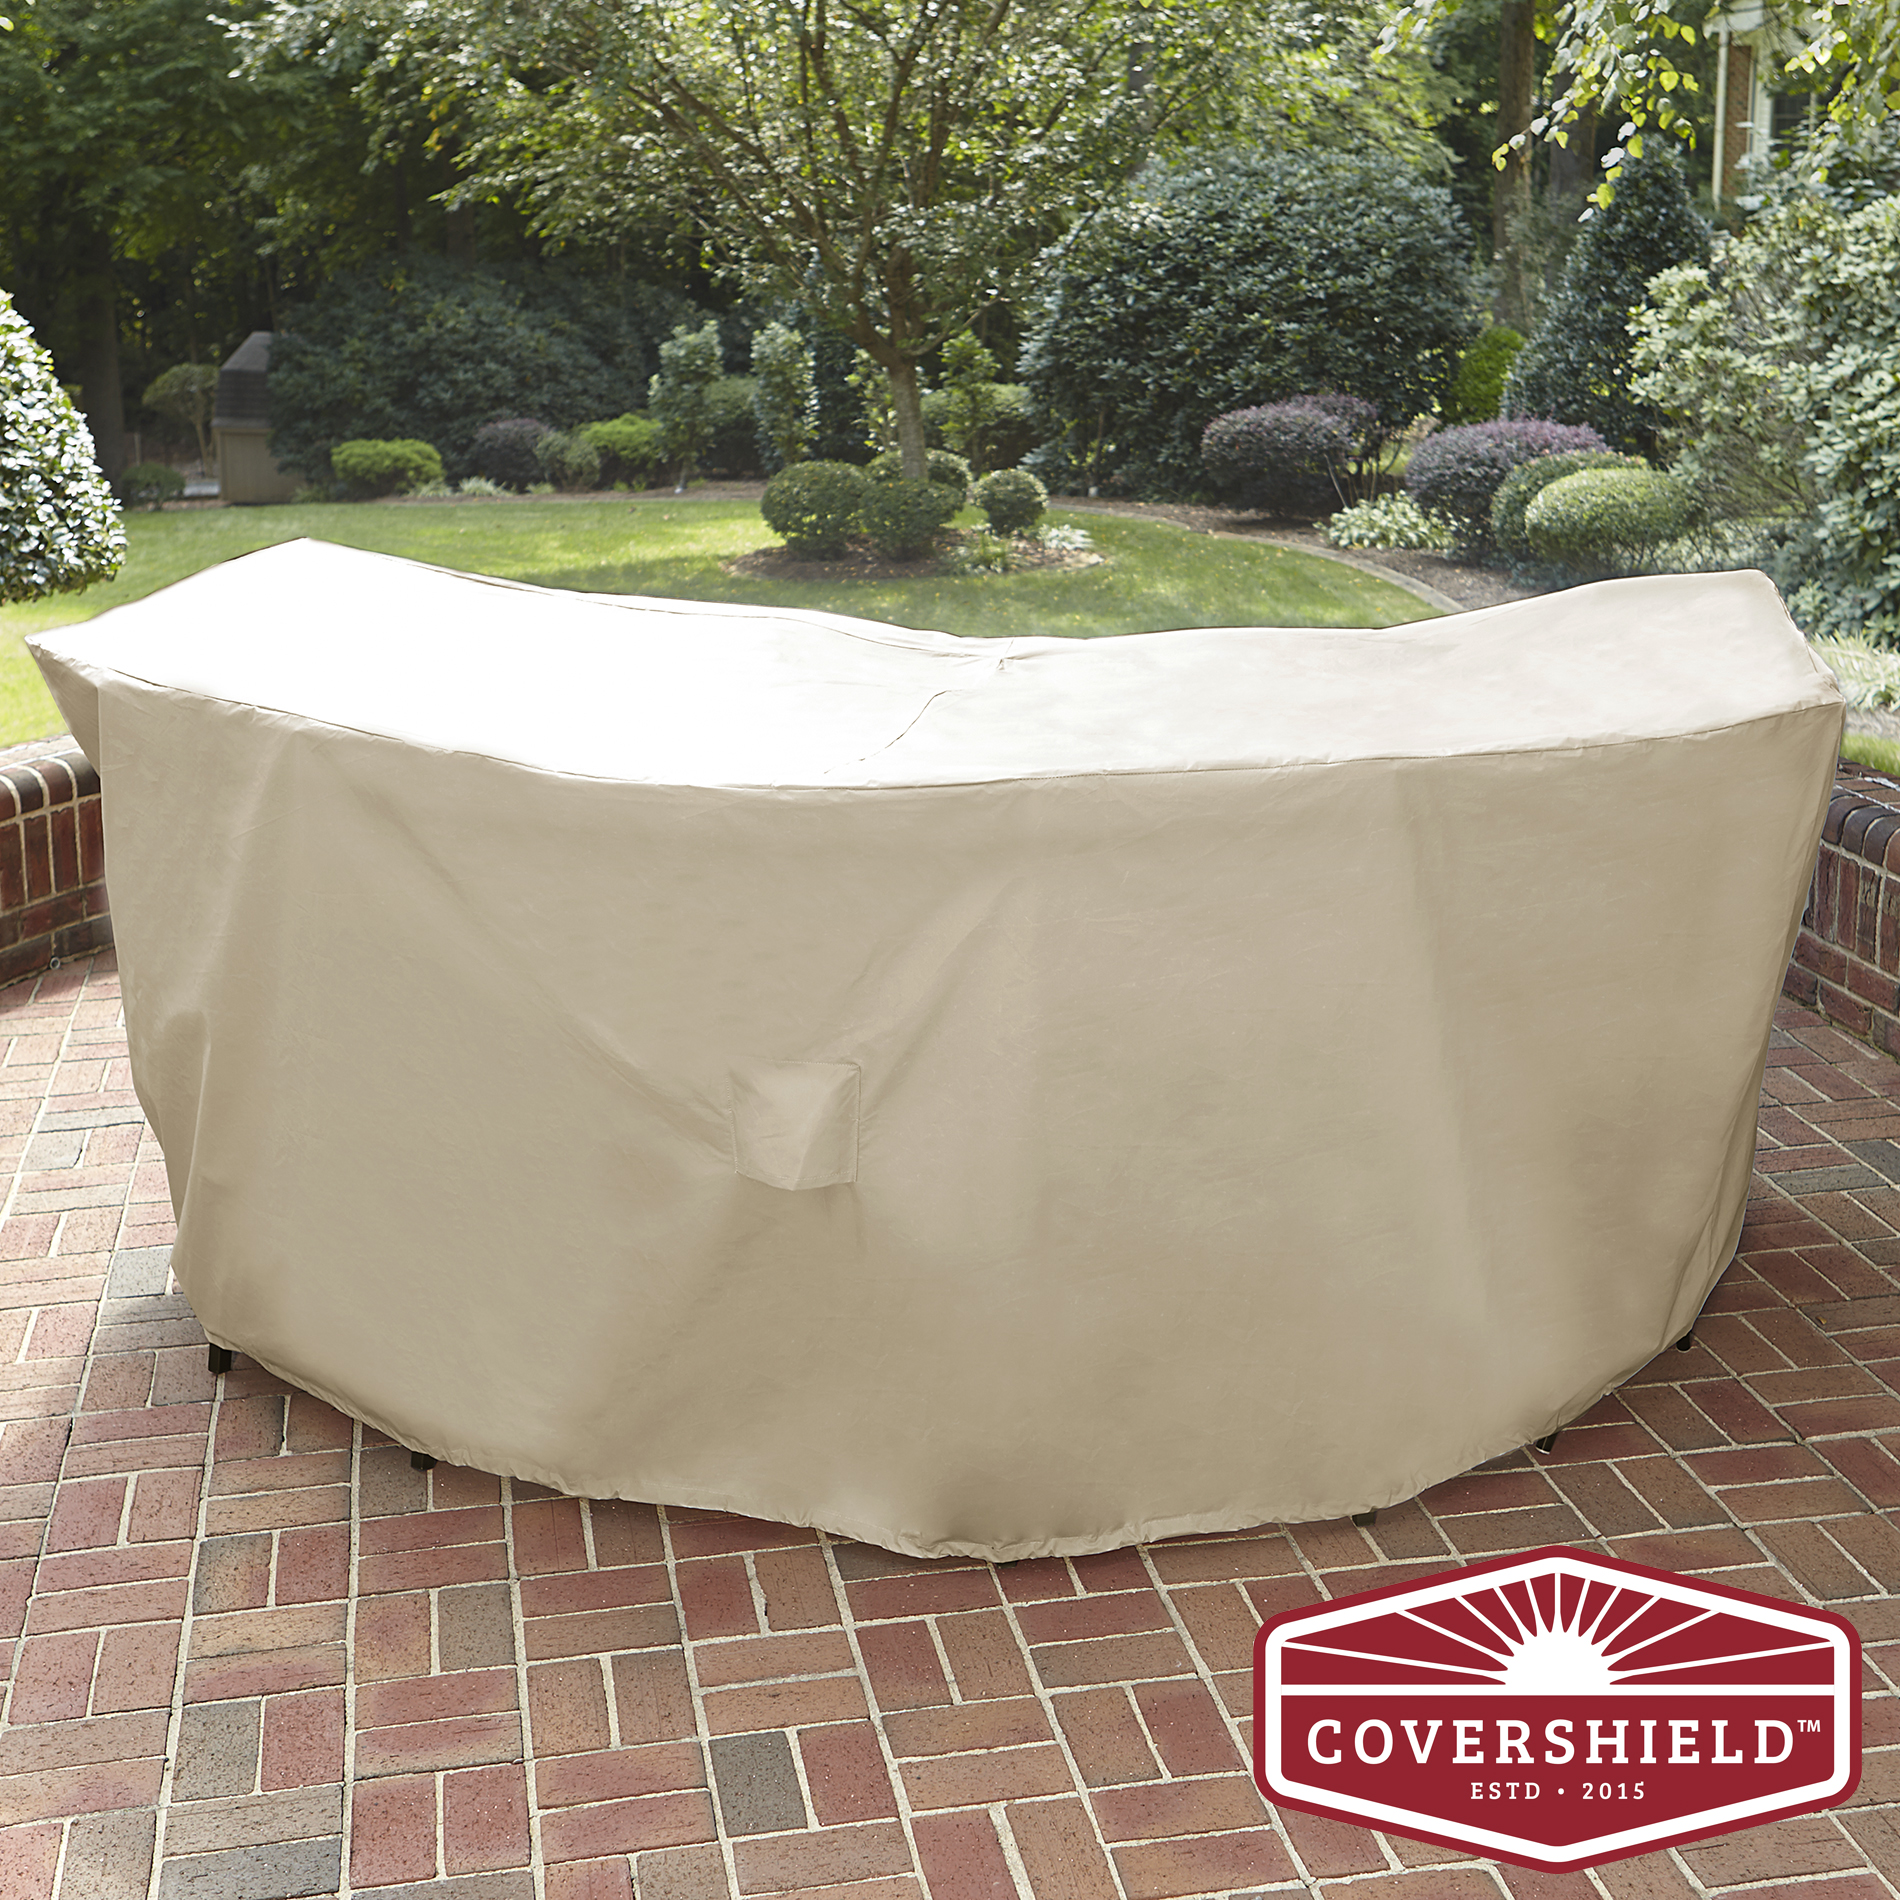 Covershield Bar Cover- Basic - Outdoor Living Patio